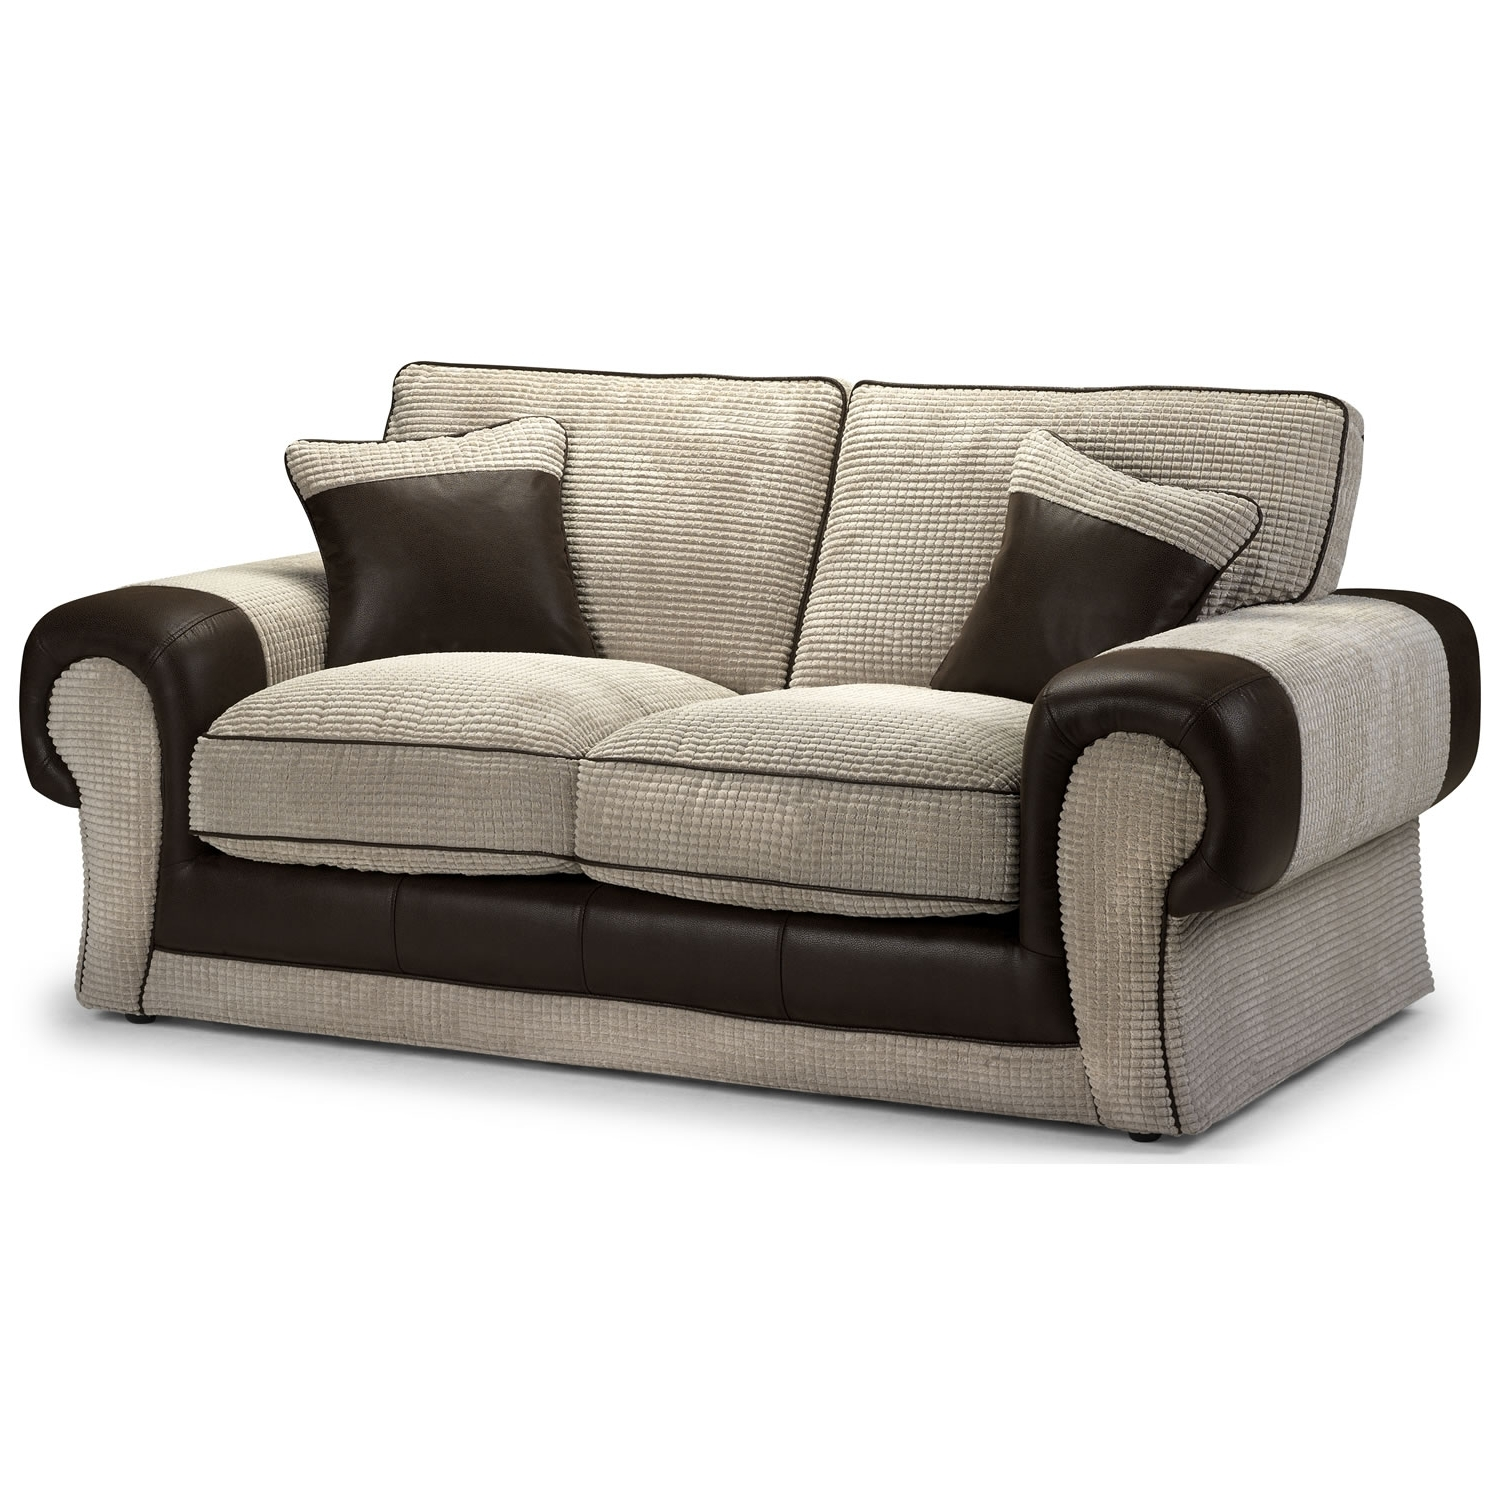 Favorite Two Seater Sofas Intended For Tangent 2 Seater Sofa – Next Day Delivery Tangent 2 Seater Sofa (View 5 of 20)